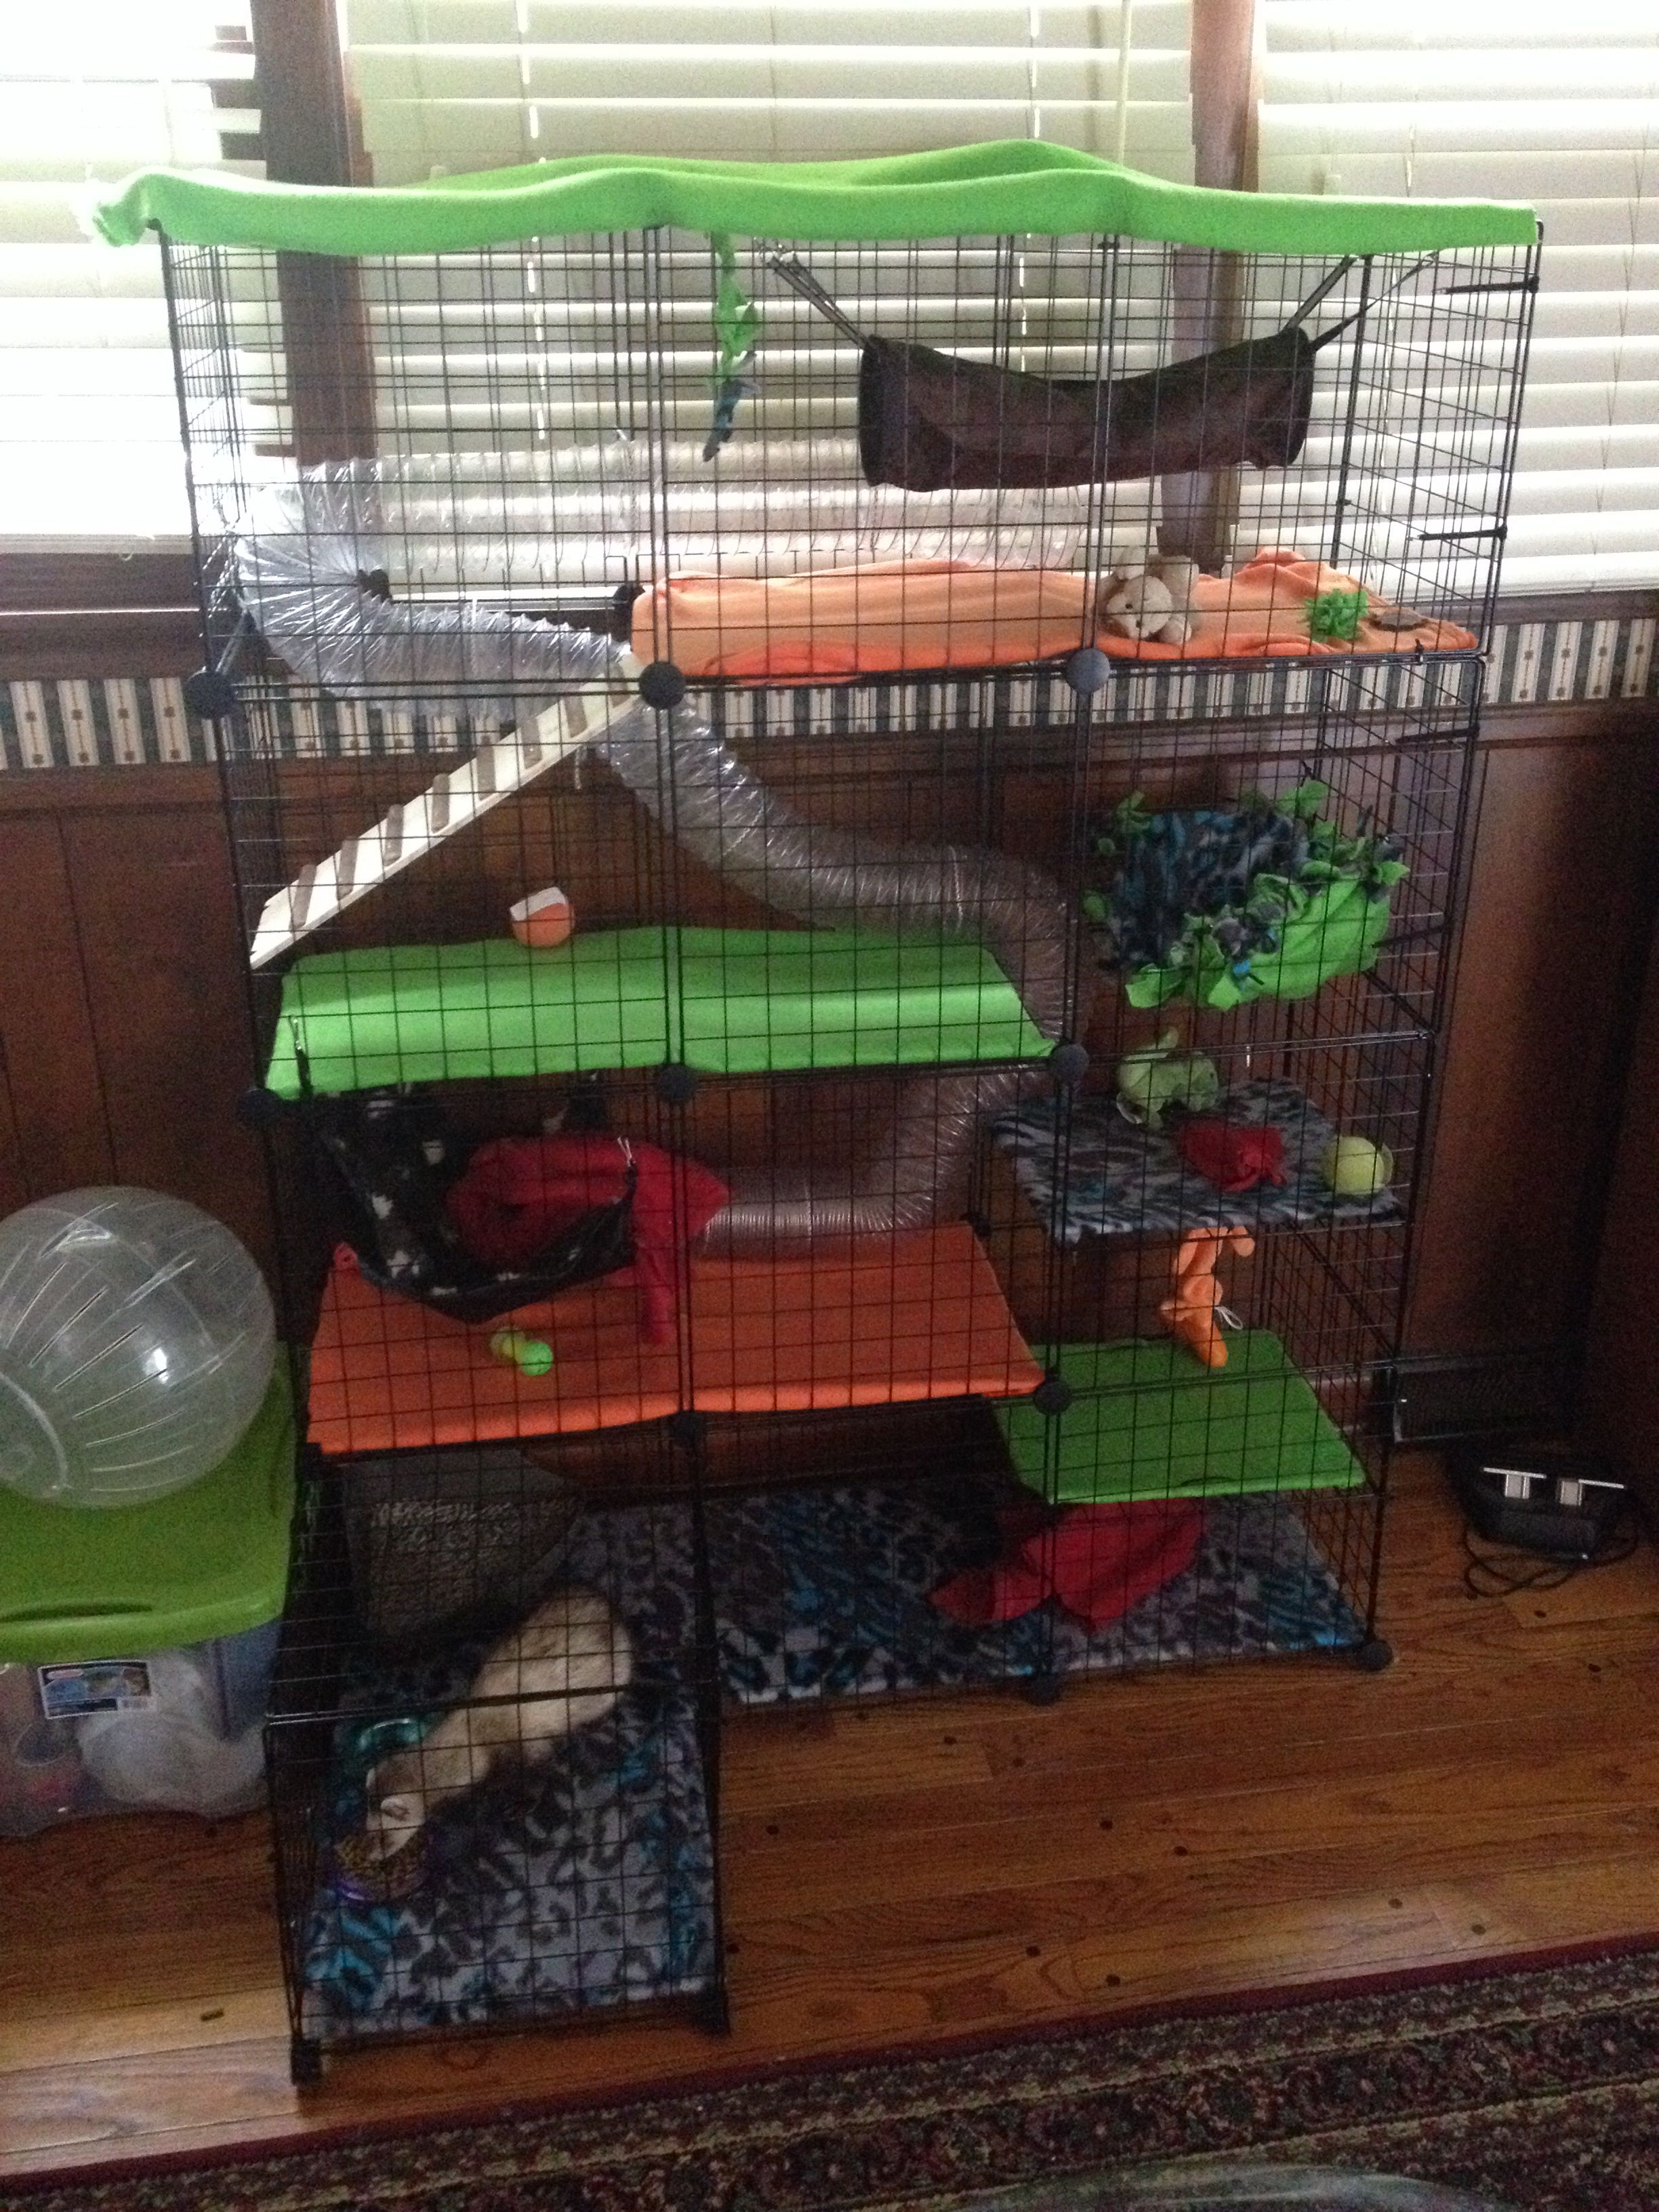 Diy Ferret Cage This Looks So Fun And Easy And Our 2 Boys